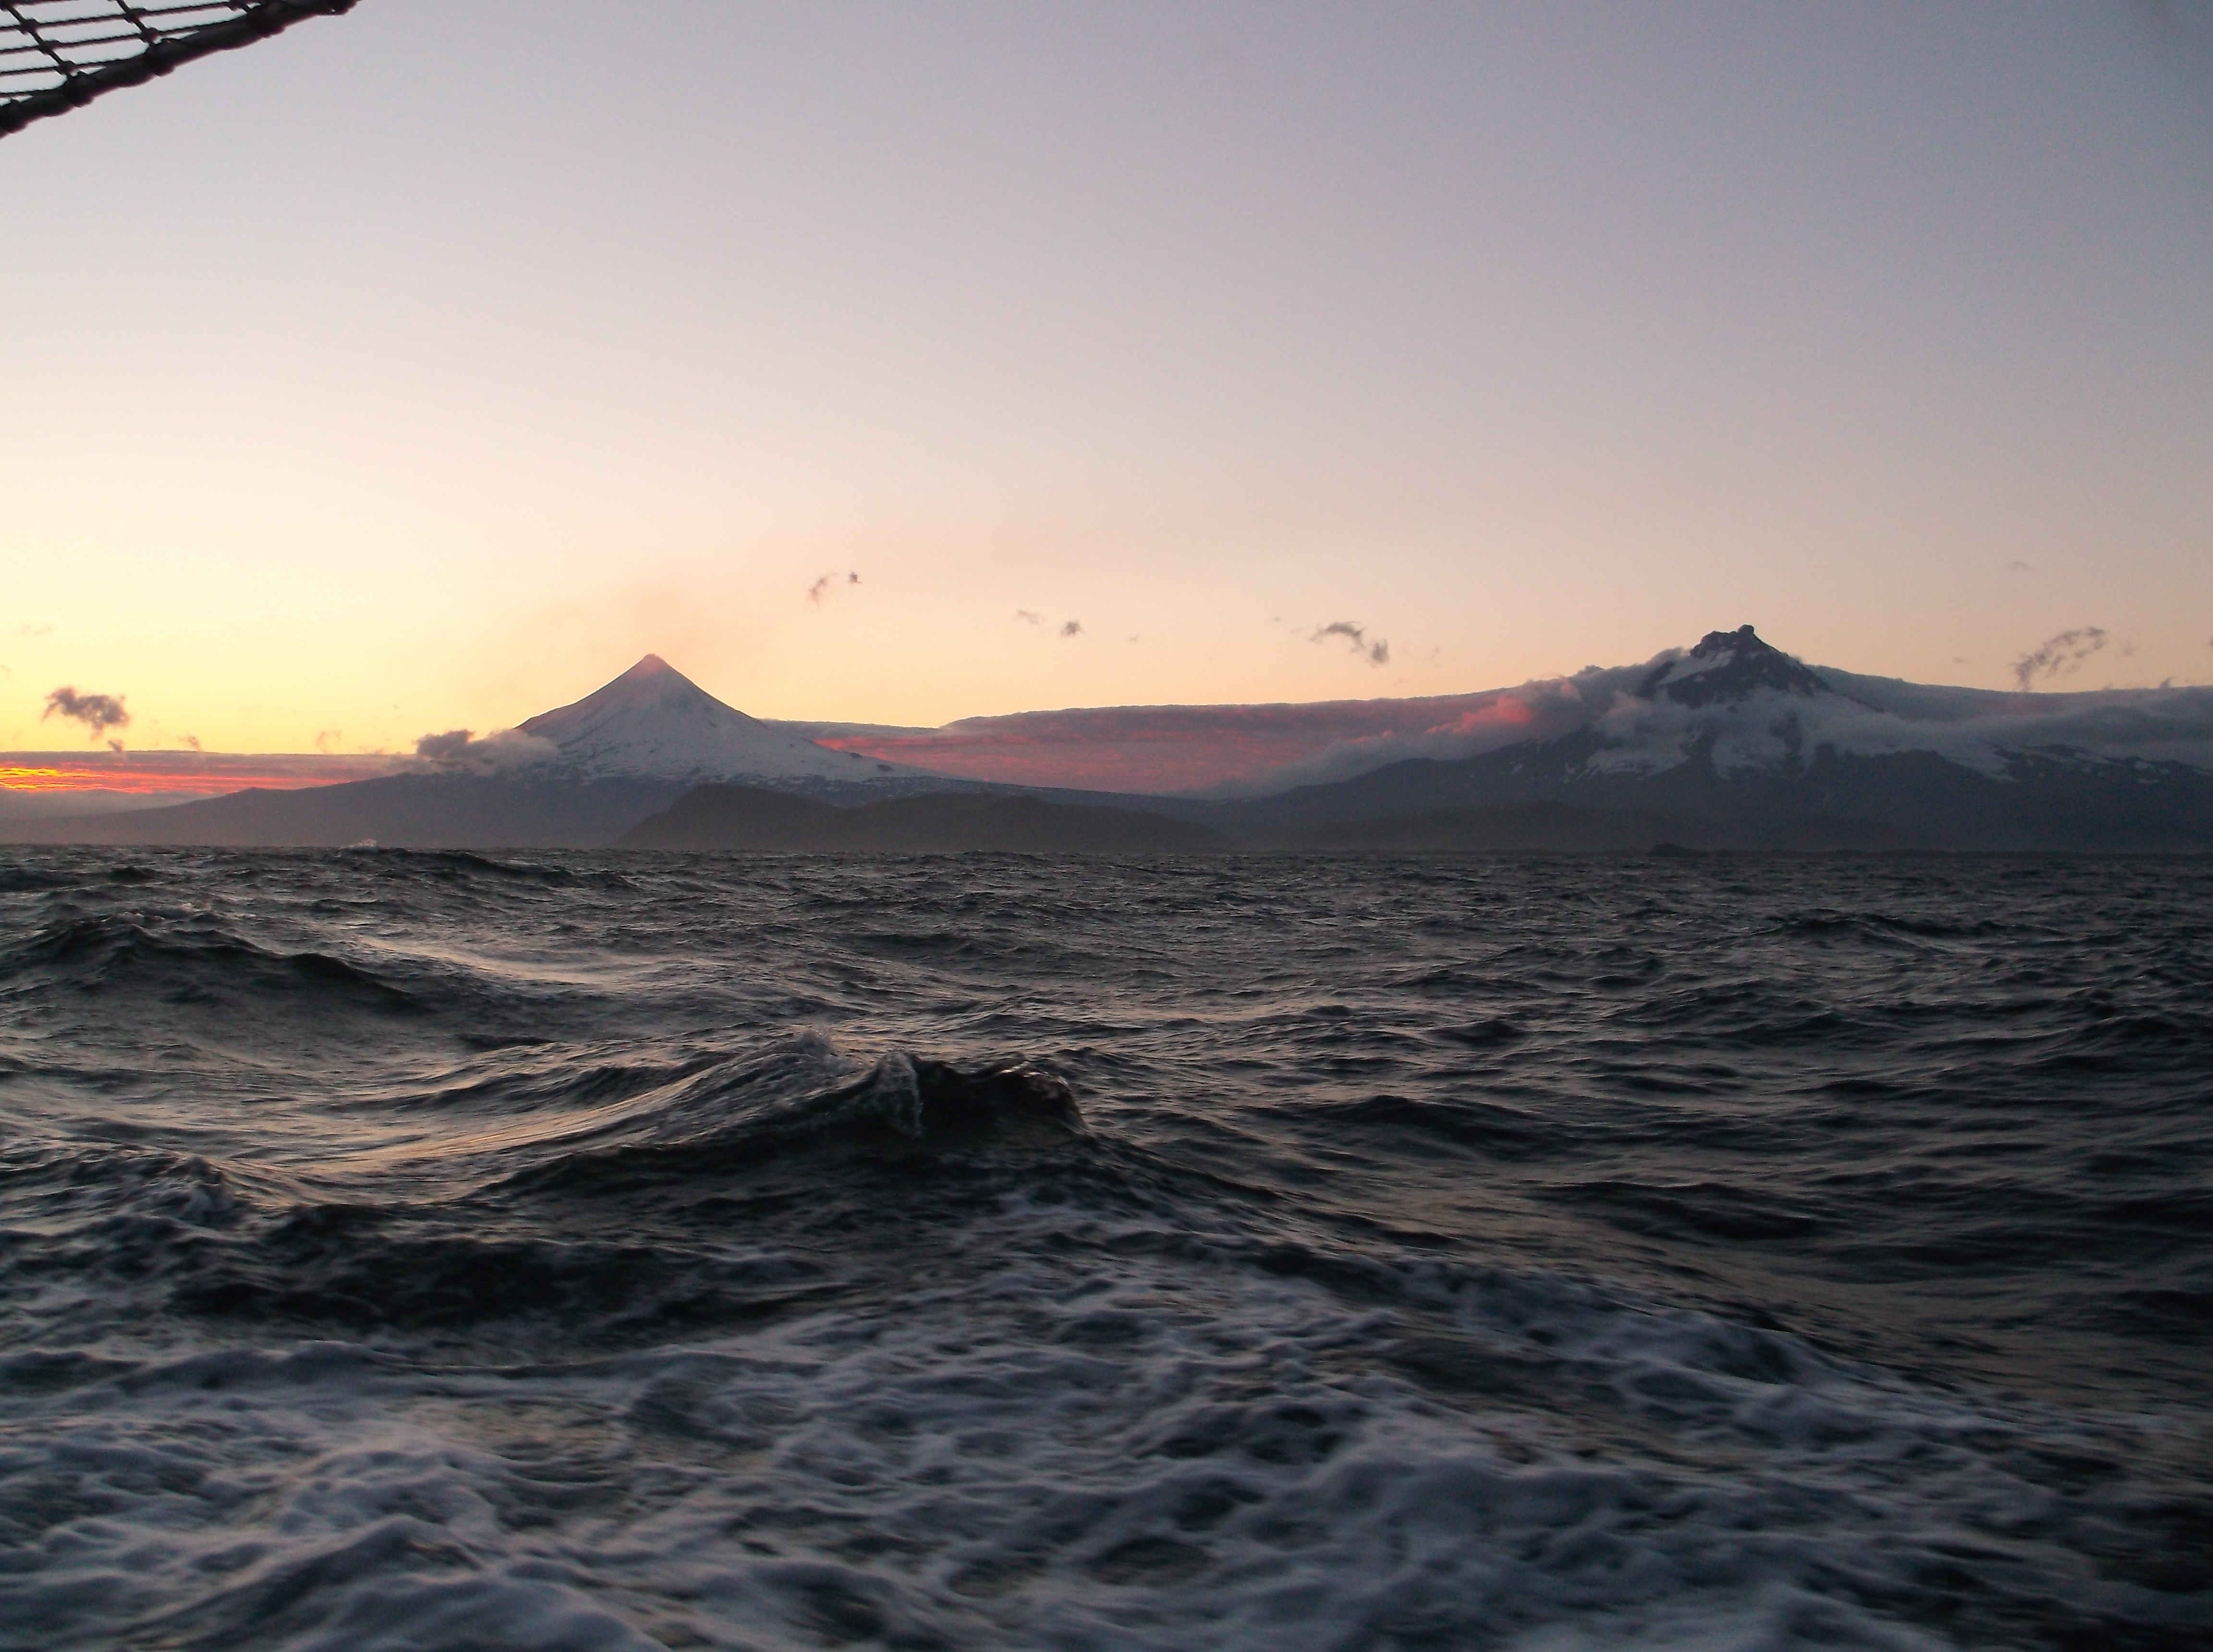 Photo of Cleveland Volcano (right) and neighboring Carlisle (left) from a boat. Photo by Diana Roman. I have never been to or seen Cleveland, unfortunately.